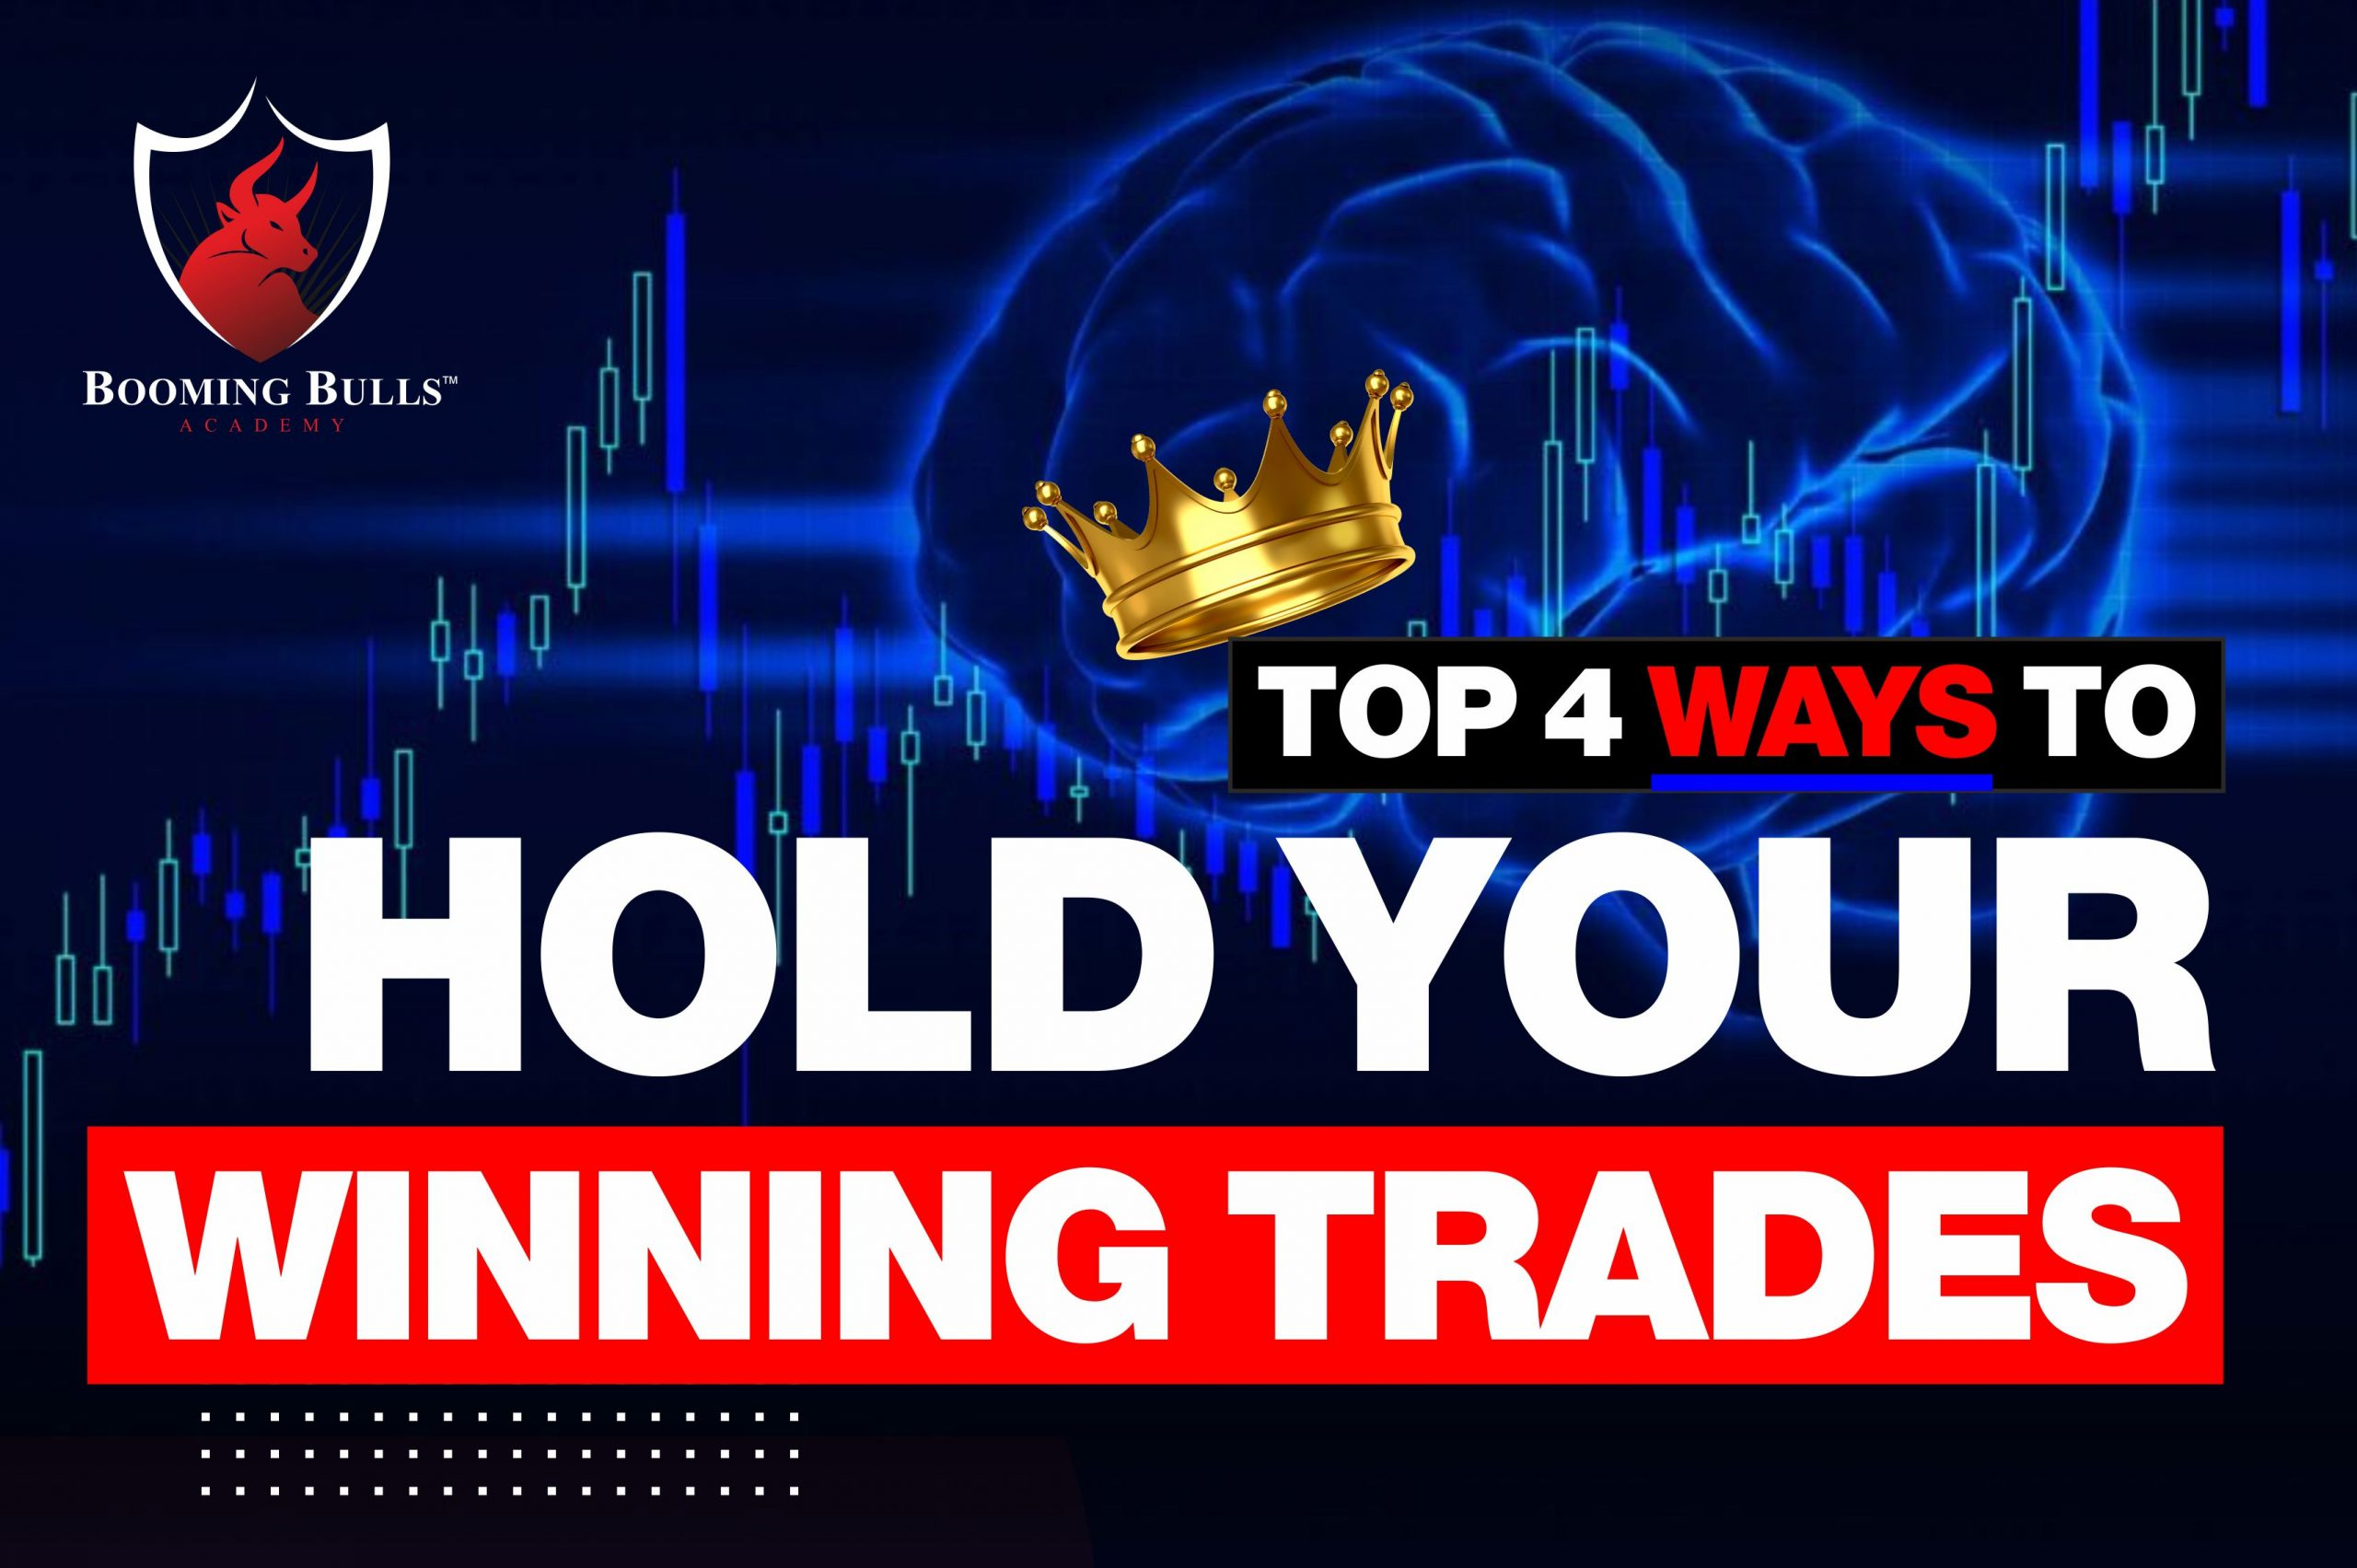 Top 4 Ways to Hold Your Winning Trades